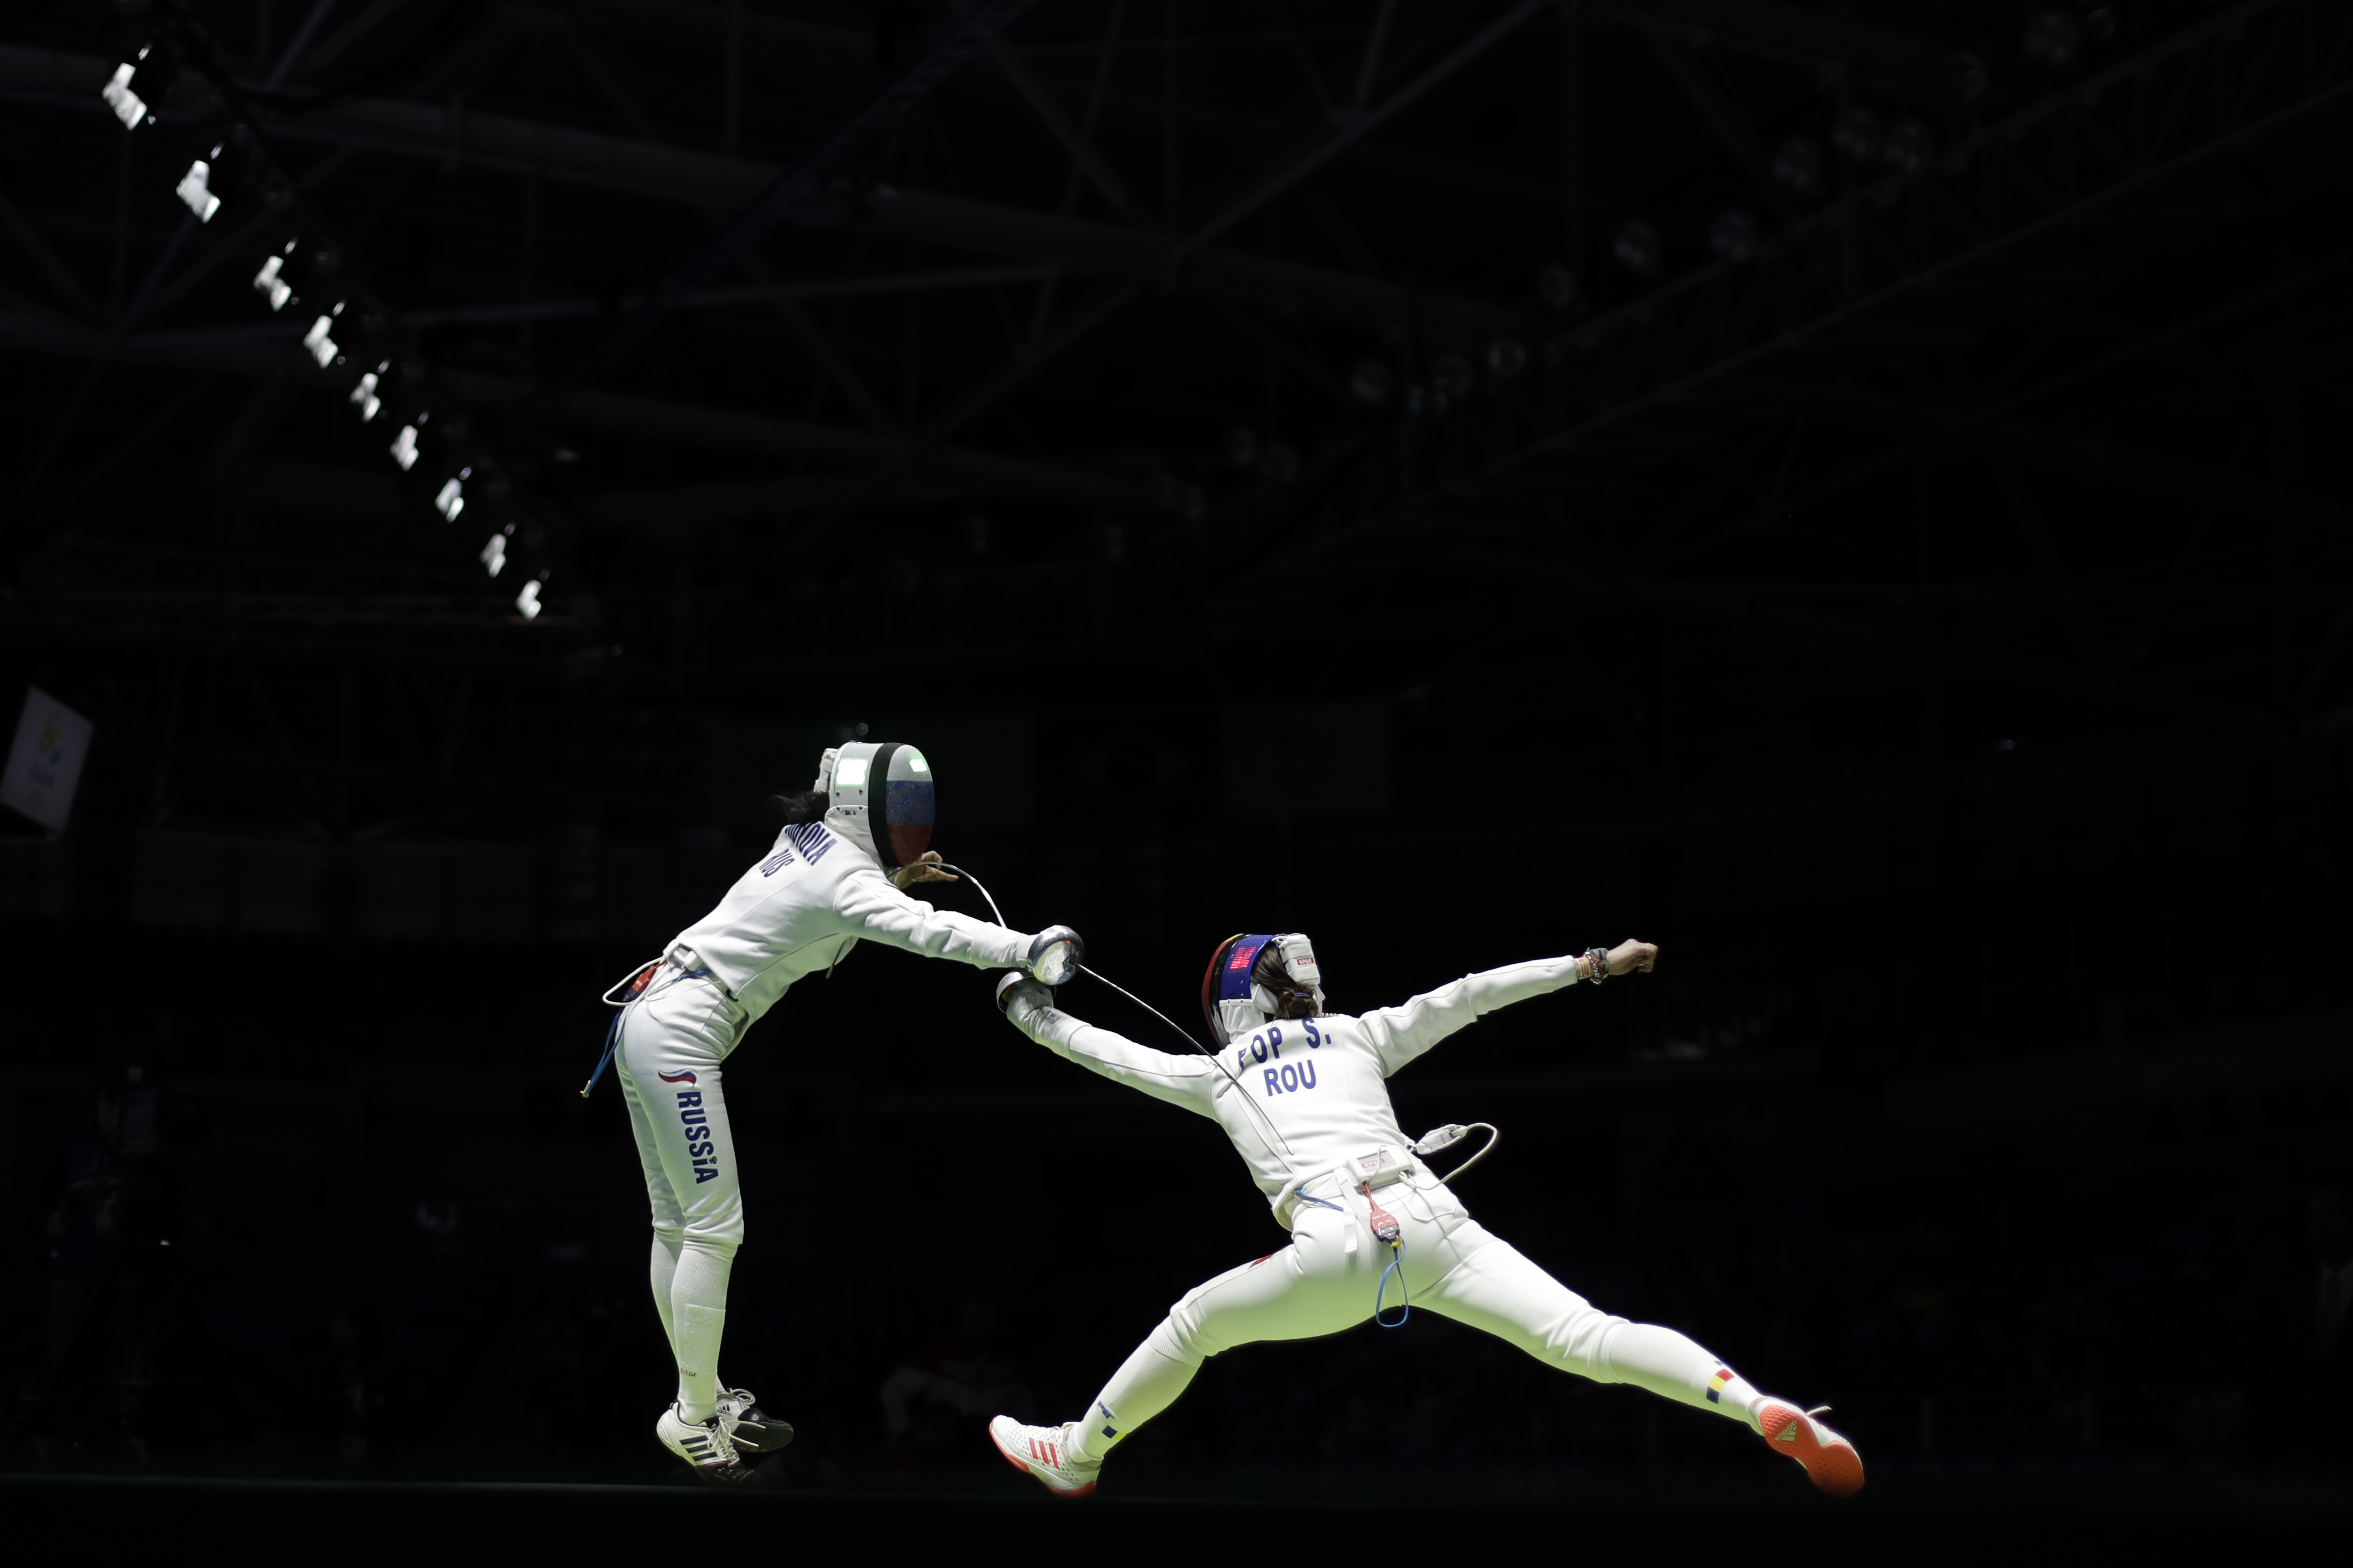 Romania's Simona Pop, right, competes against Russia's Lyubov Shutova during the women's epee team fencing semifinal competition of the 2016 Summer Olympics in Rio de Janeiro, Brazil, Thursday, Aug. 11, 2016. (AP Photo/Gregory Bull)